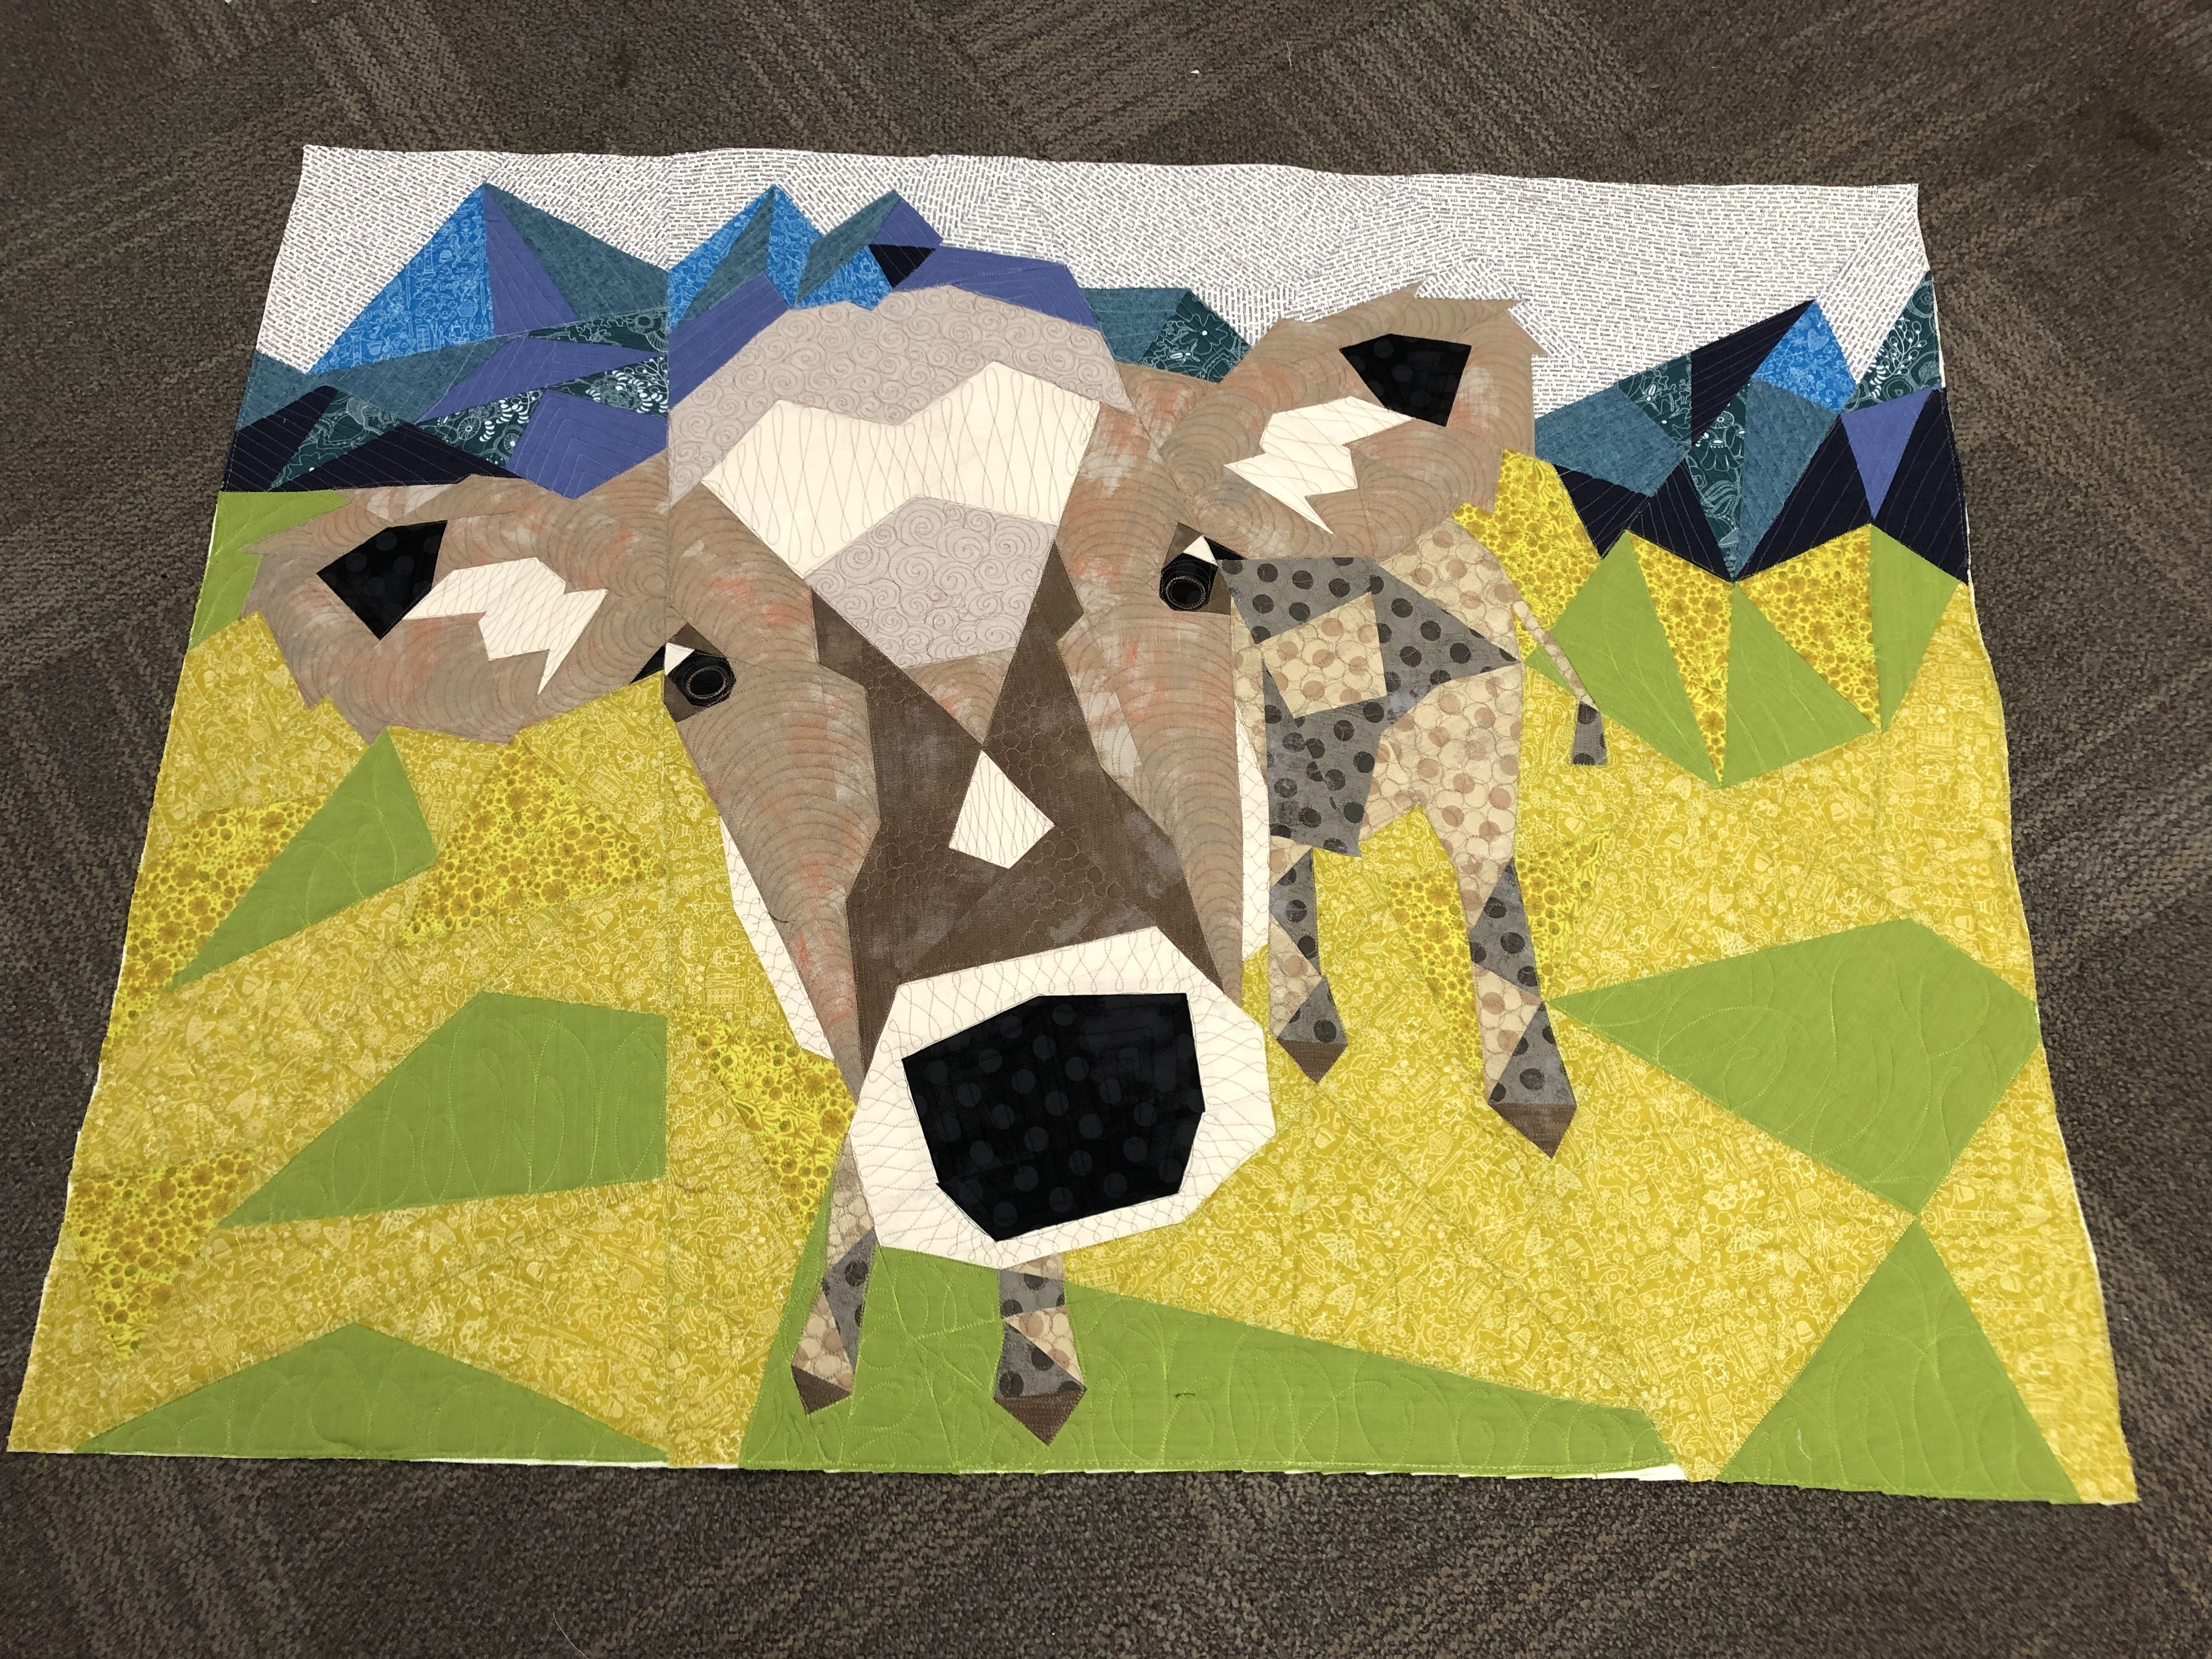 The Cow Abstractions Quilt Pattern Foundation Paper Piecing Project Violet Craft